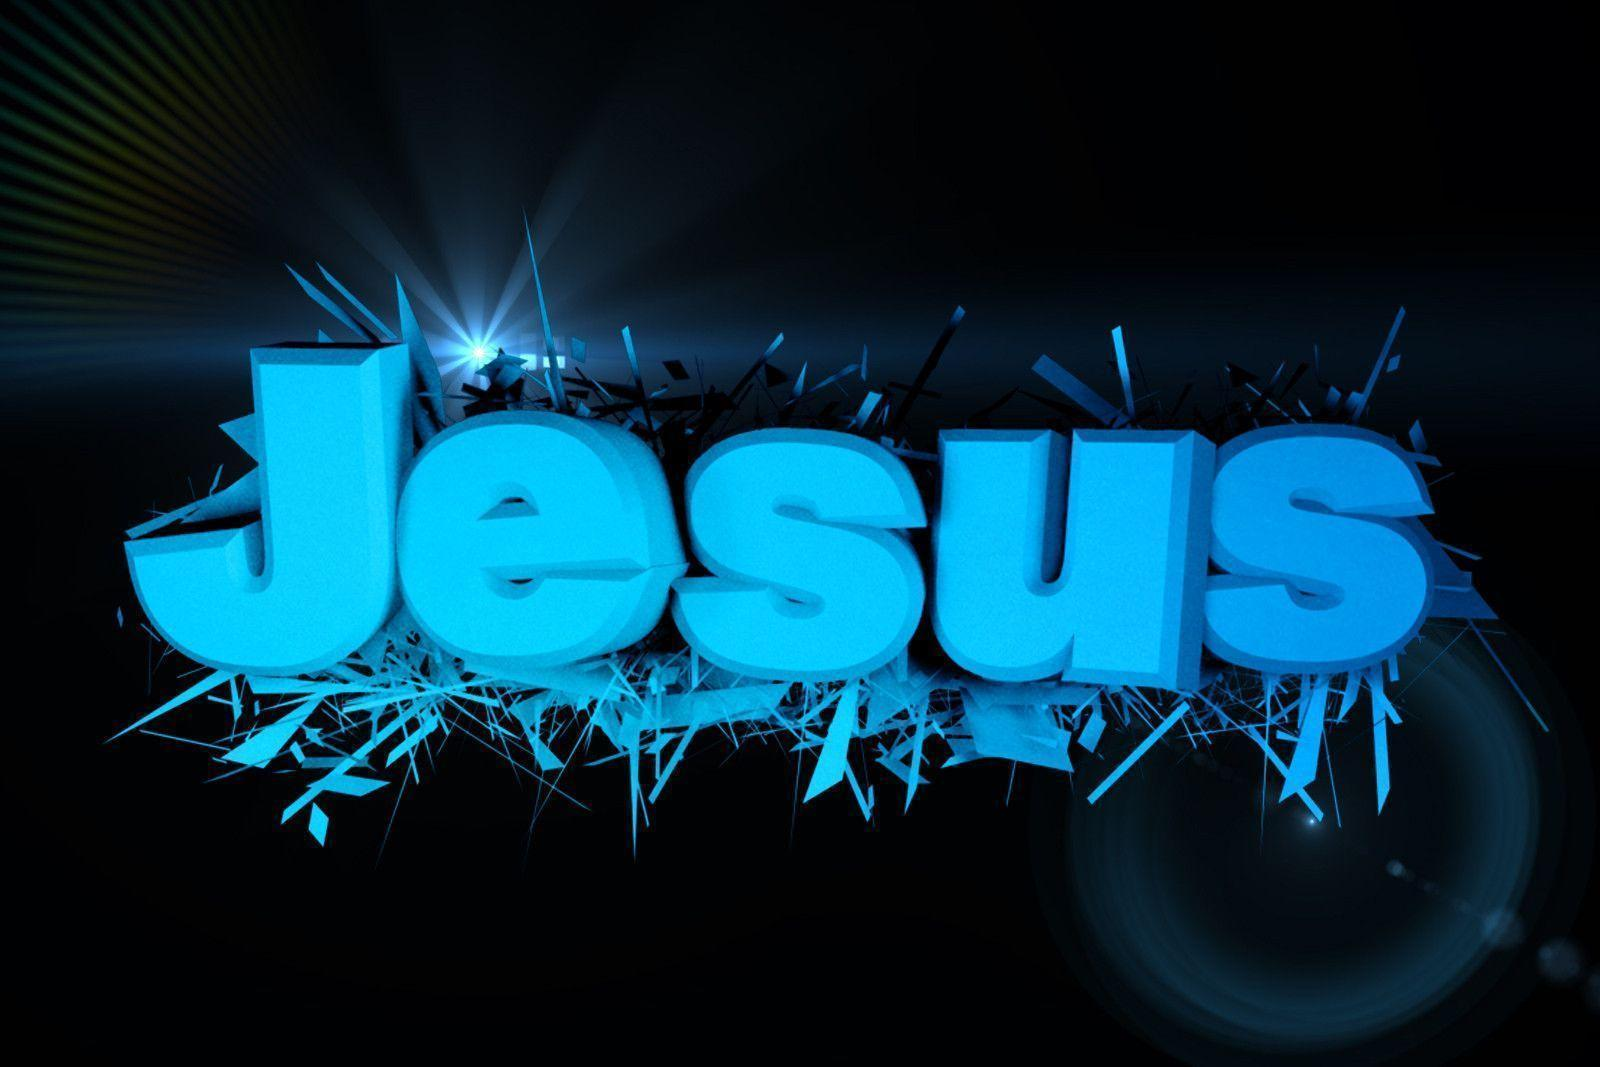 jesus wallpapers 40 wallpapers backgrounds hd